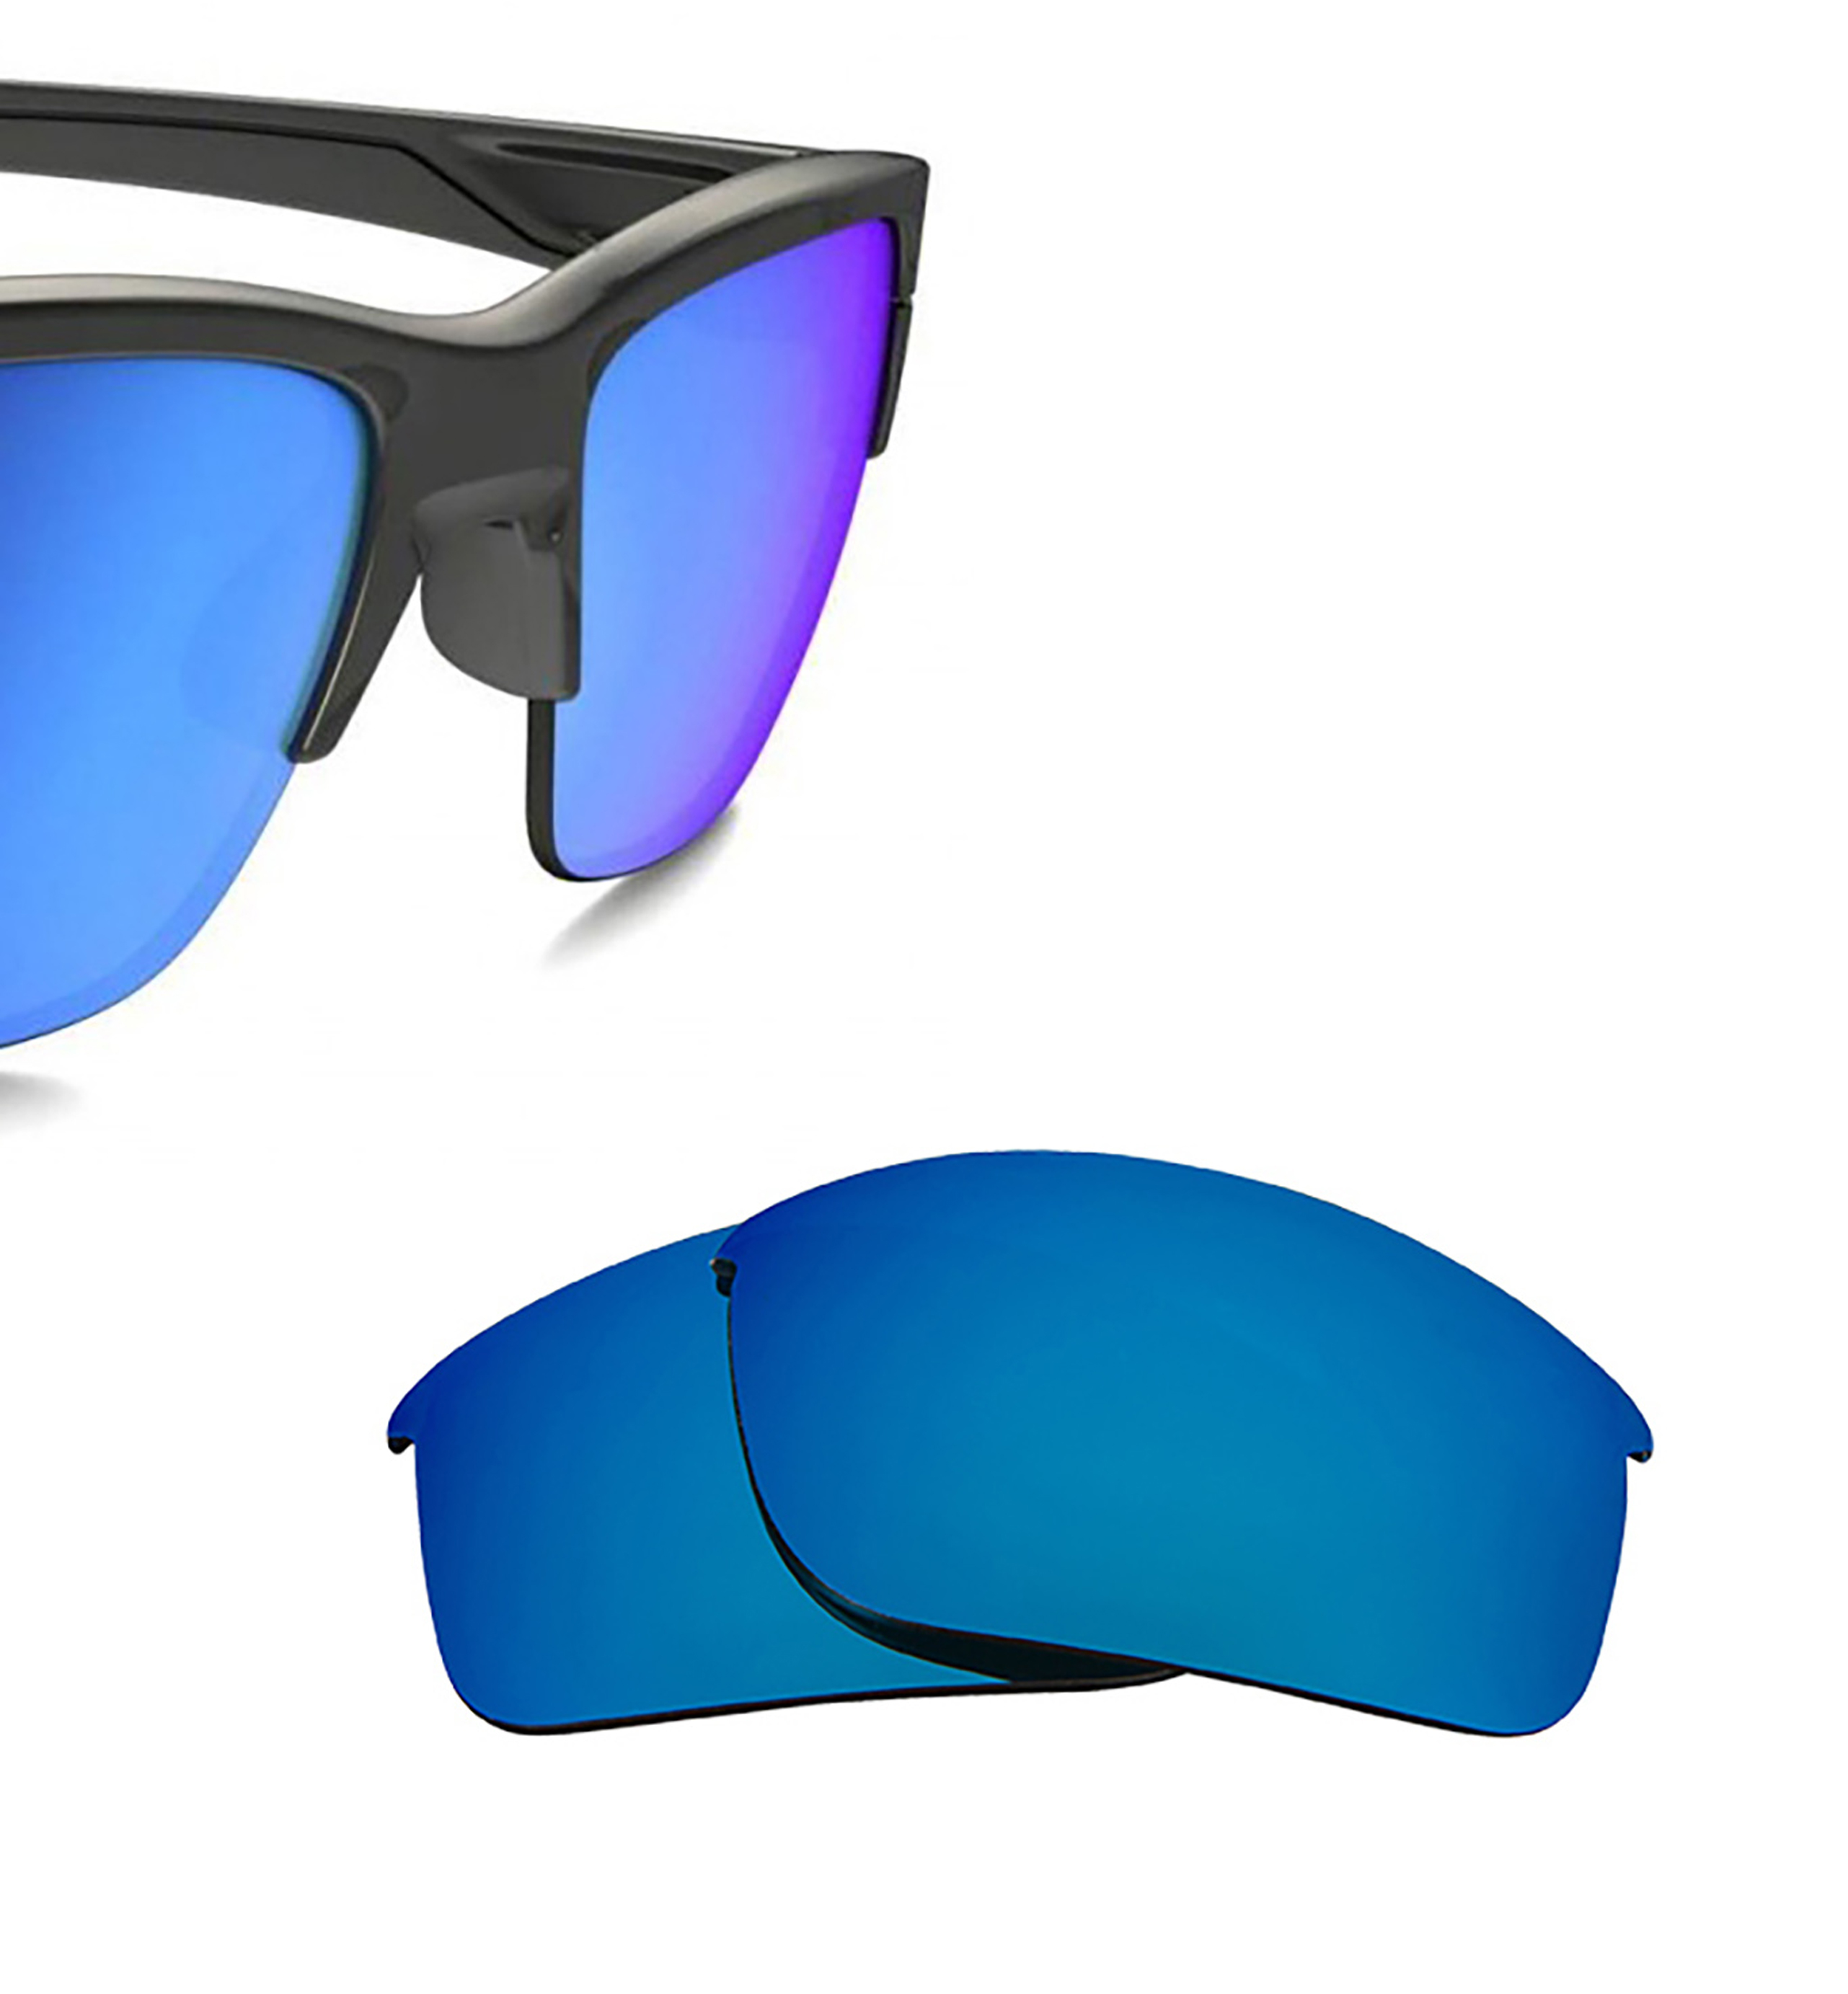 9155b2df5f Thinlink Replacement Lenses by SEEK OPTICS to fit OAKLEY Sunglasses ...